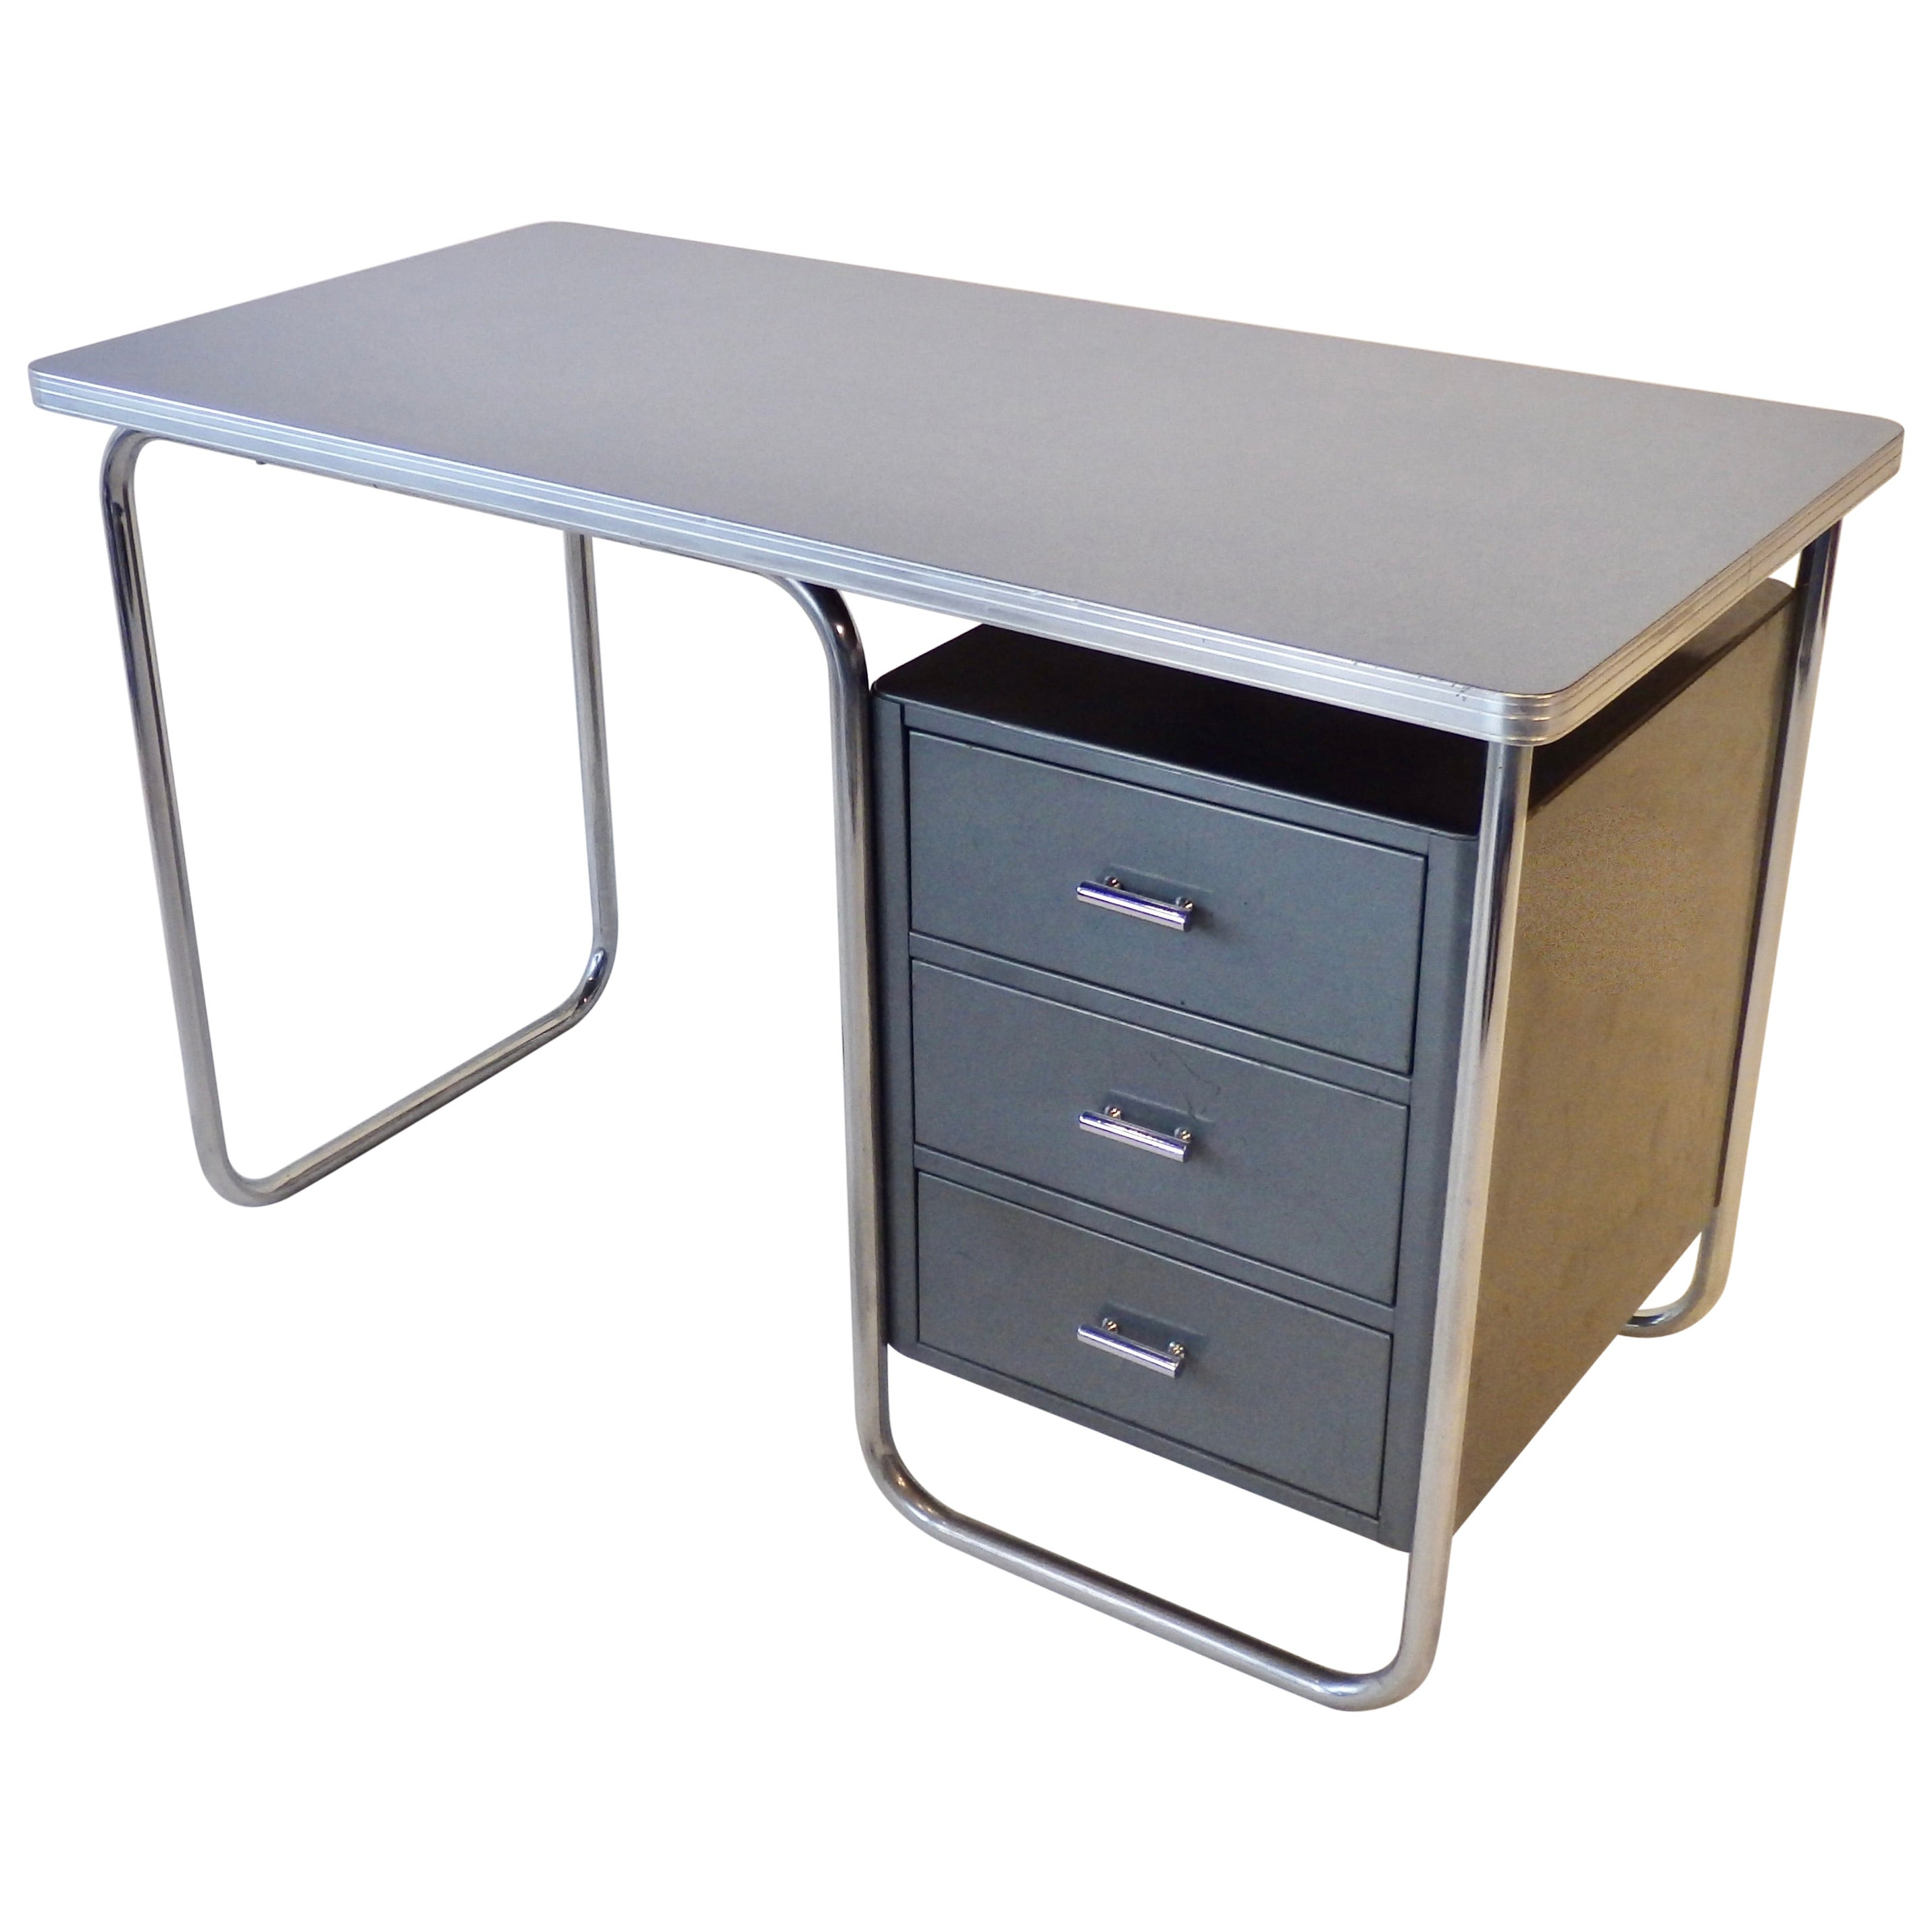 Royal Chrome Art Deco Machine Age Desk with Blue Laminate Top Grey Steel Drawers